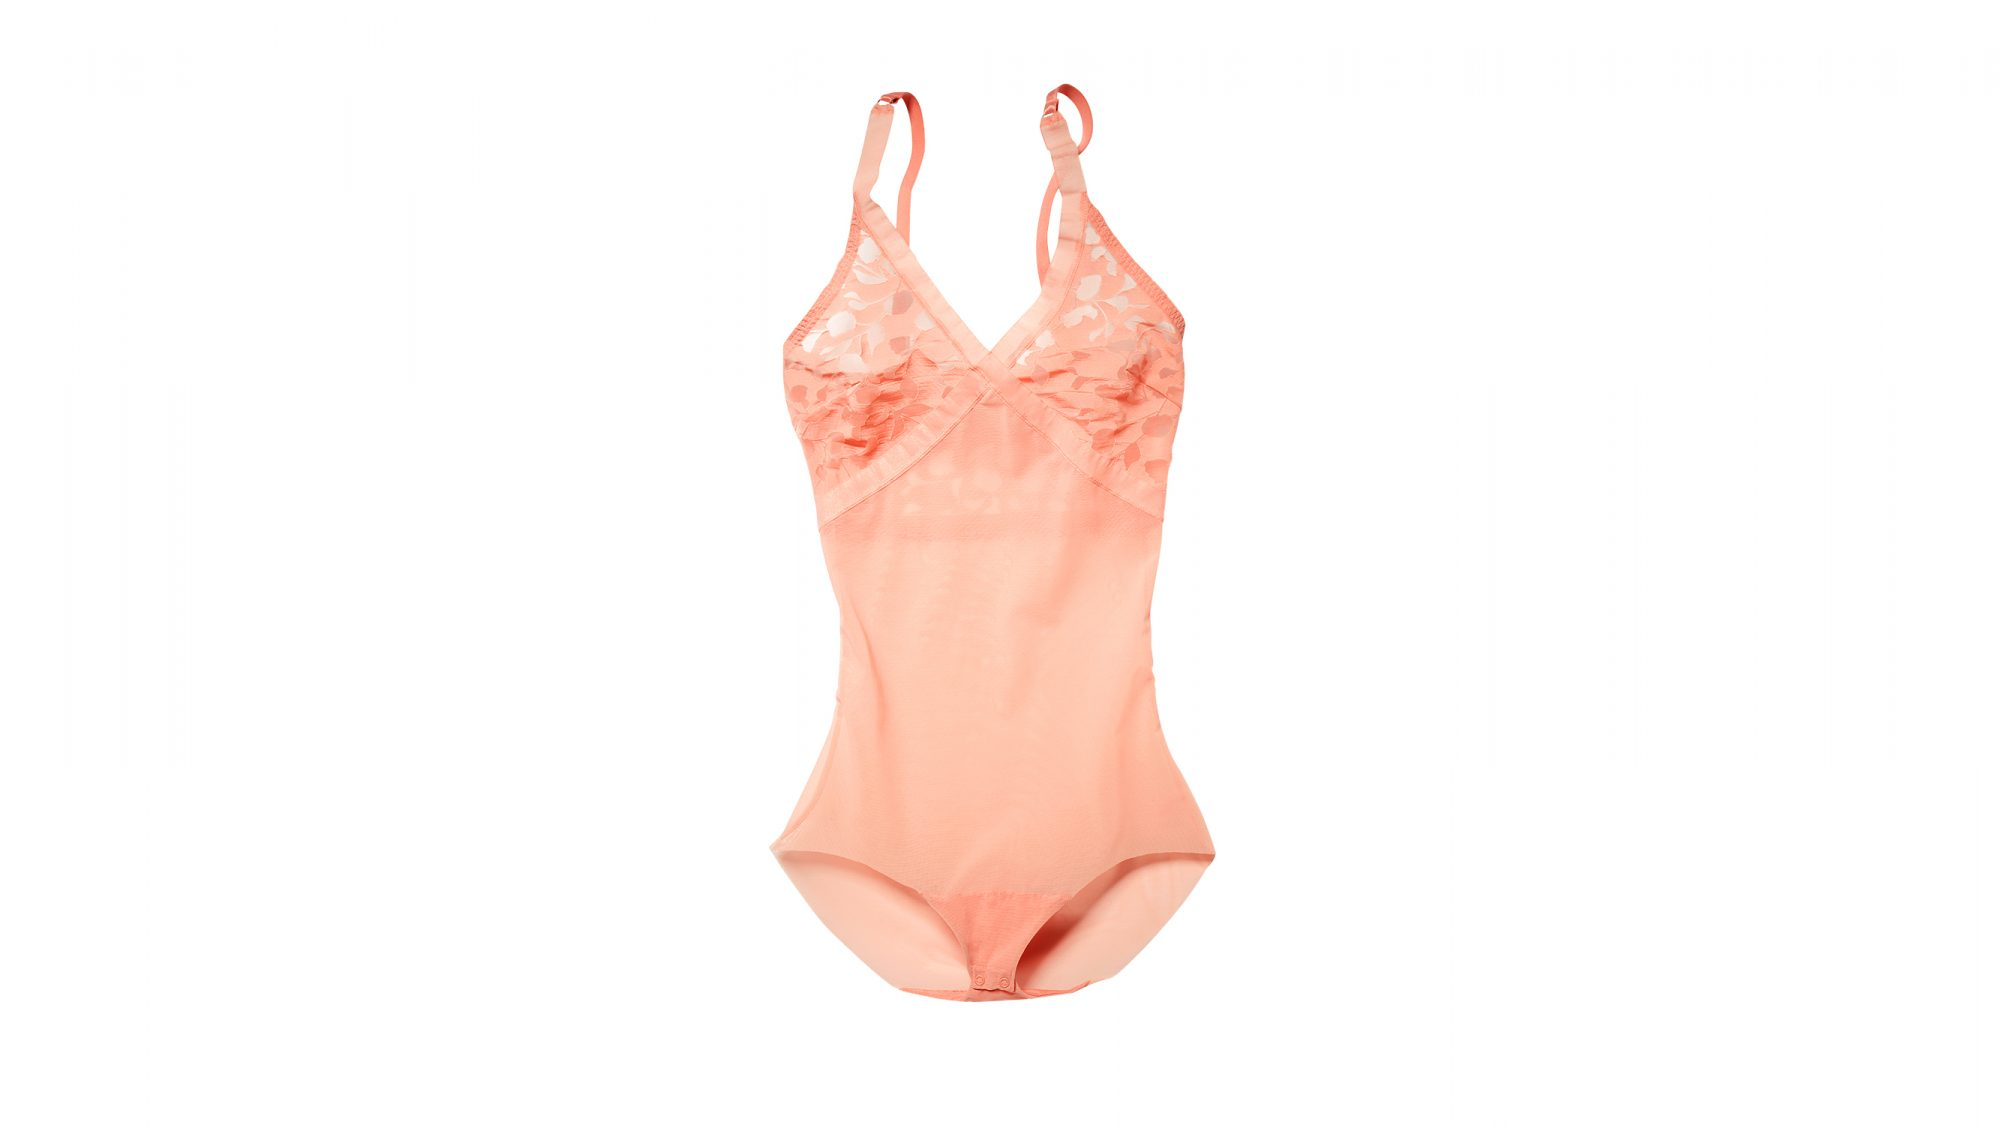 968ea1bab6 Flipboard  The Most Innovative Lingerie and Shapewear Out There ...